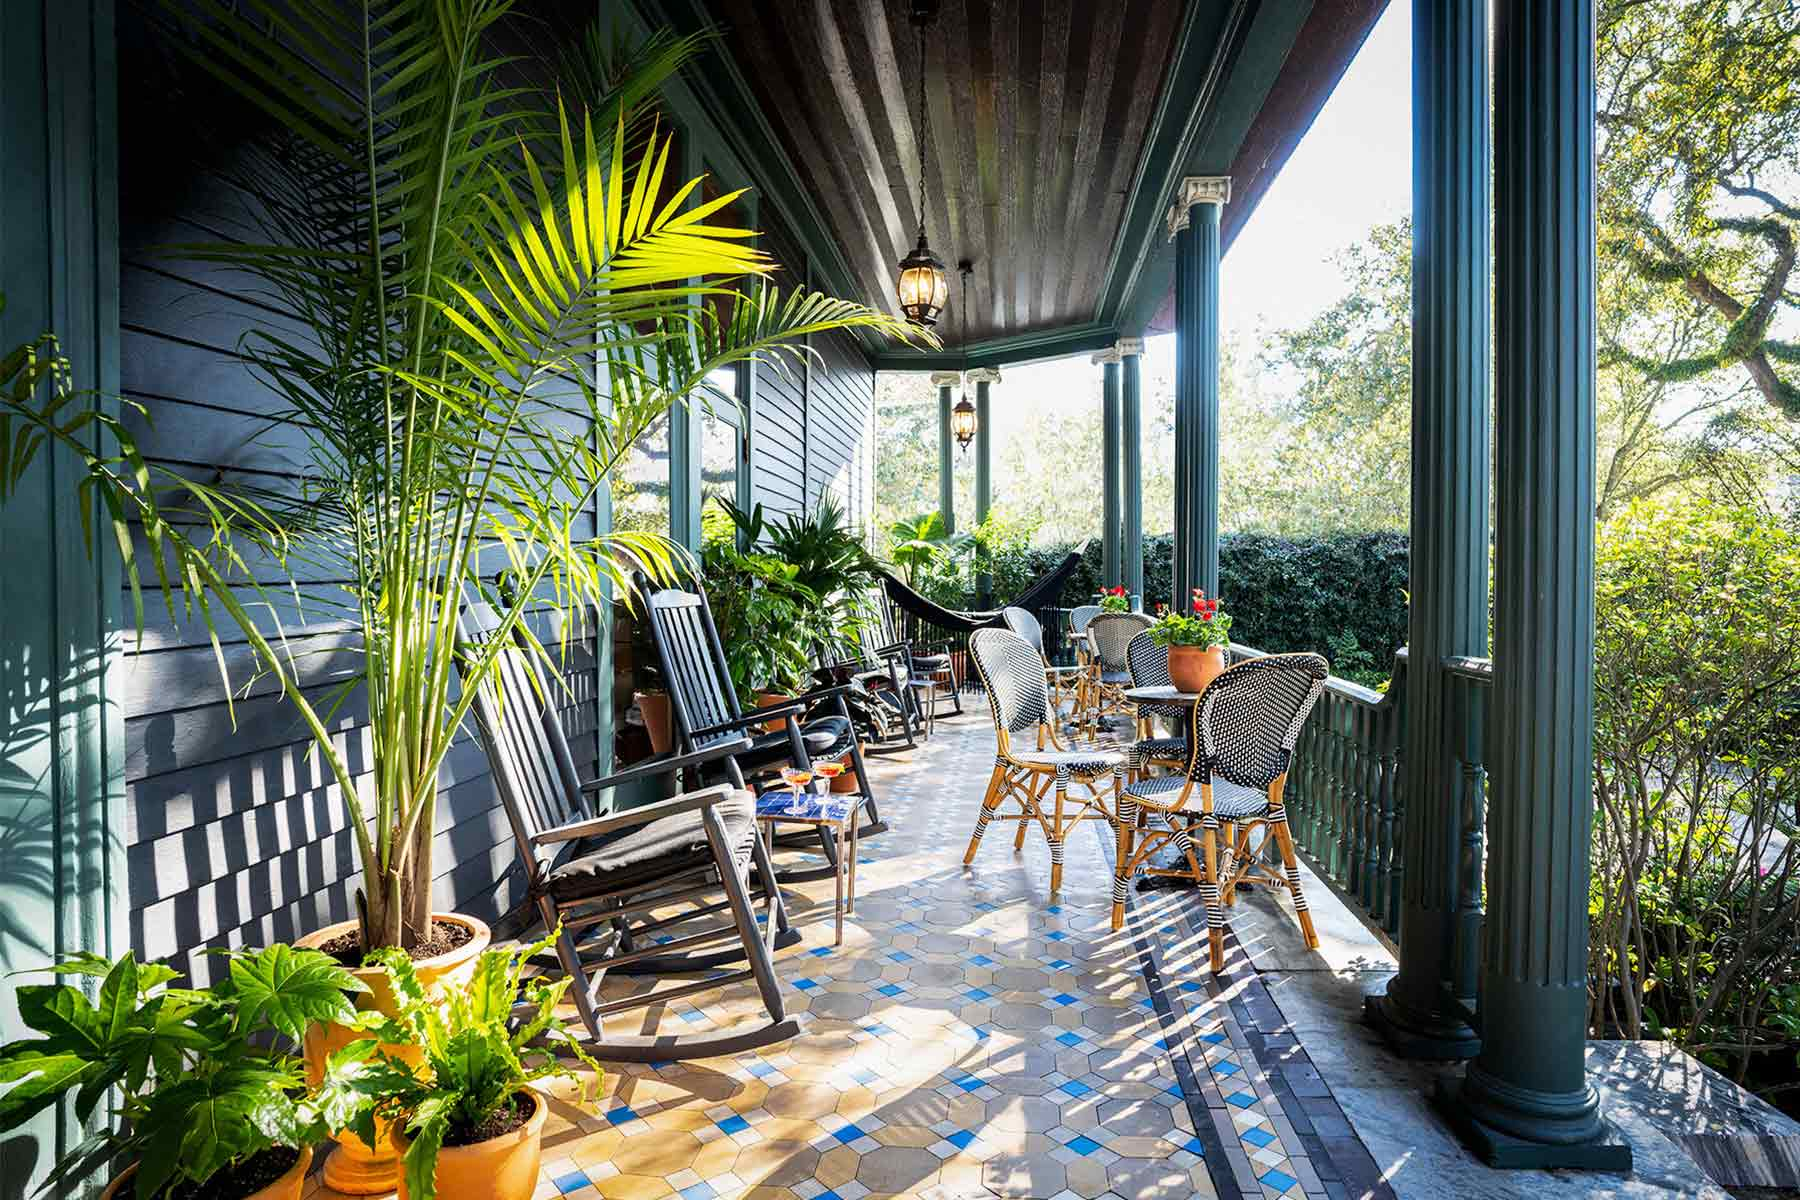 Front Porch of The Chloe Hotel New Orleans